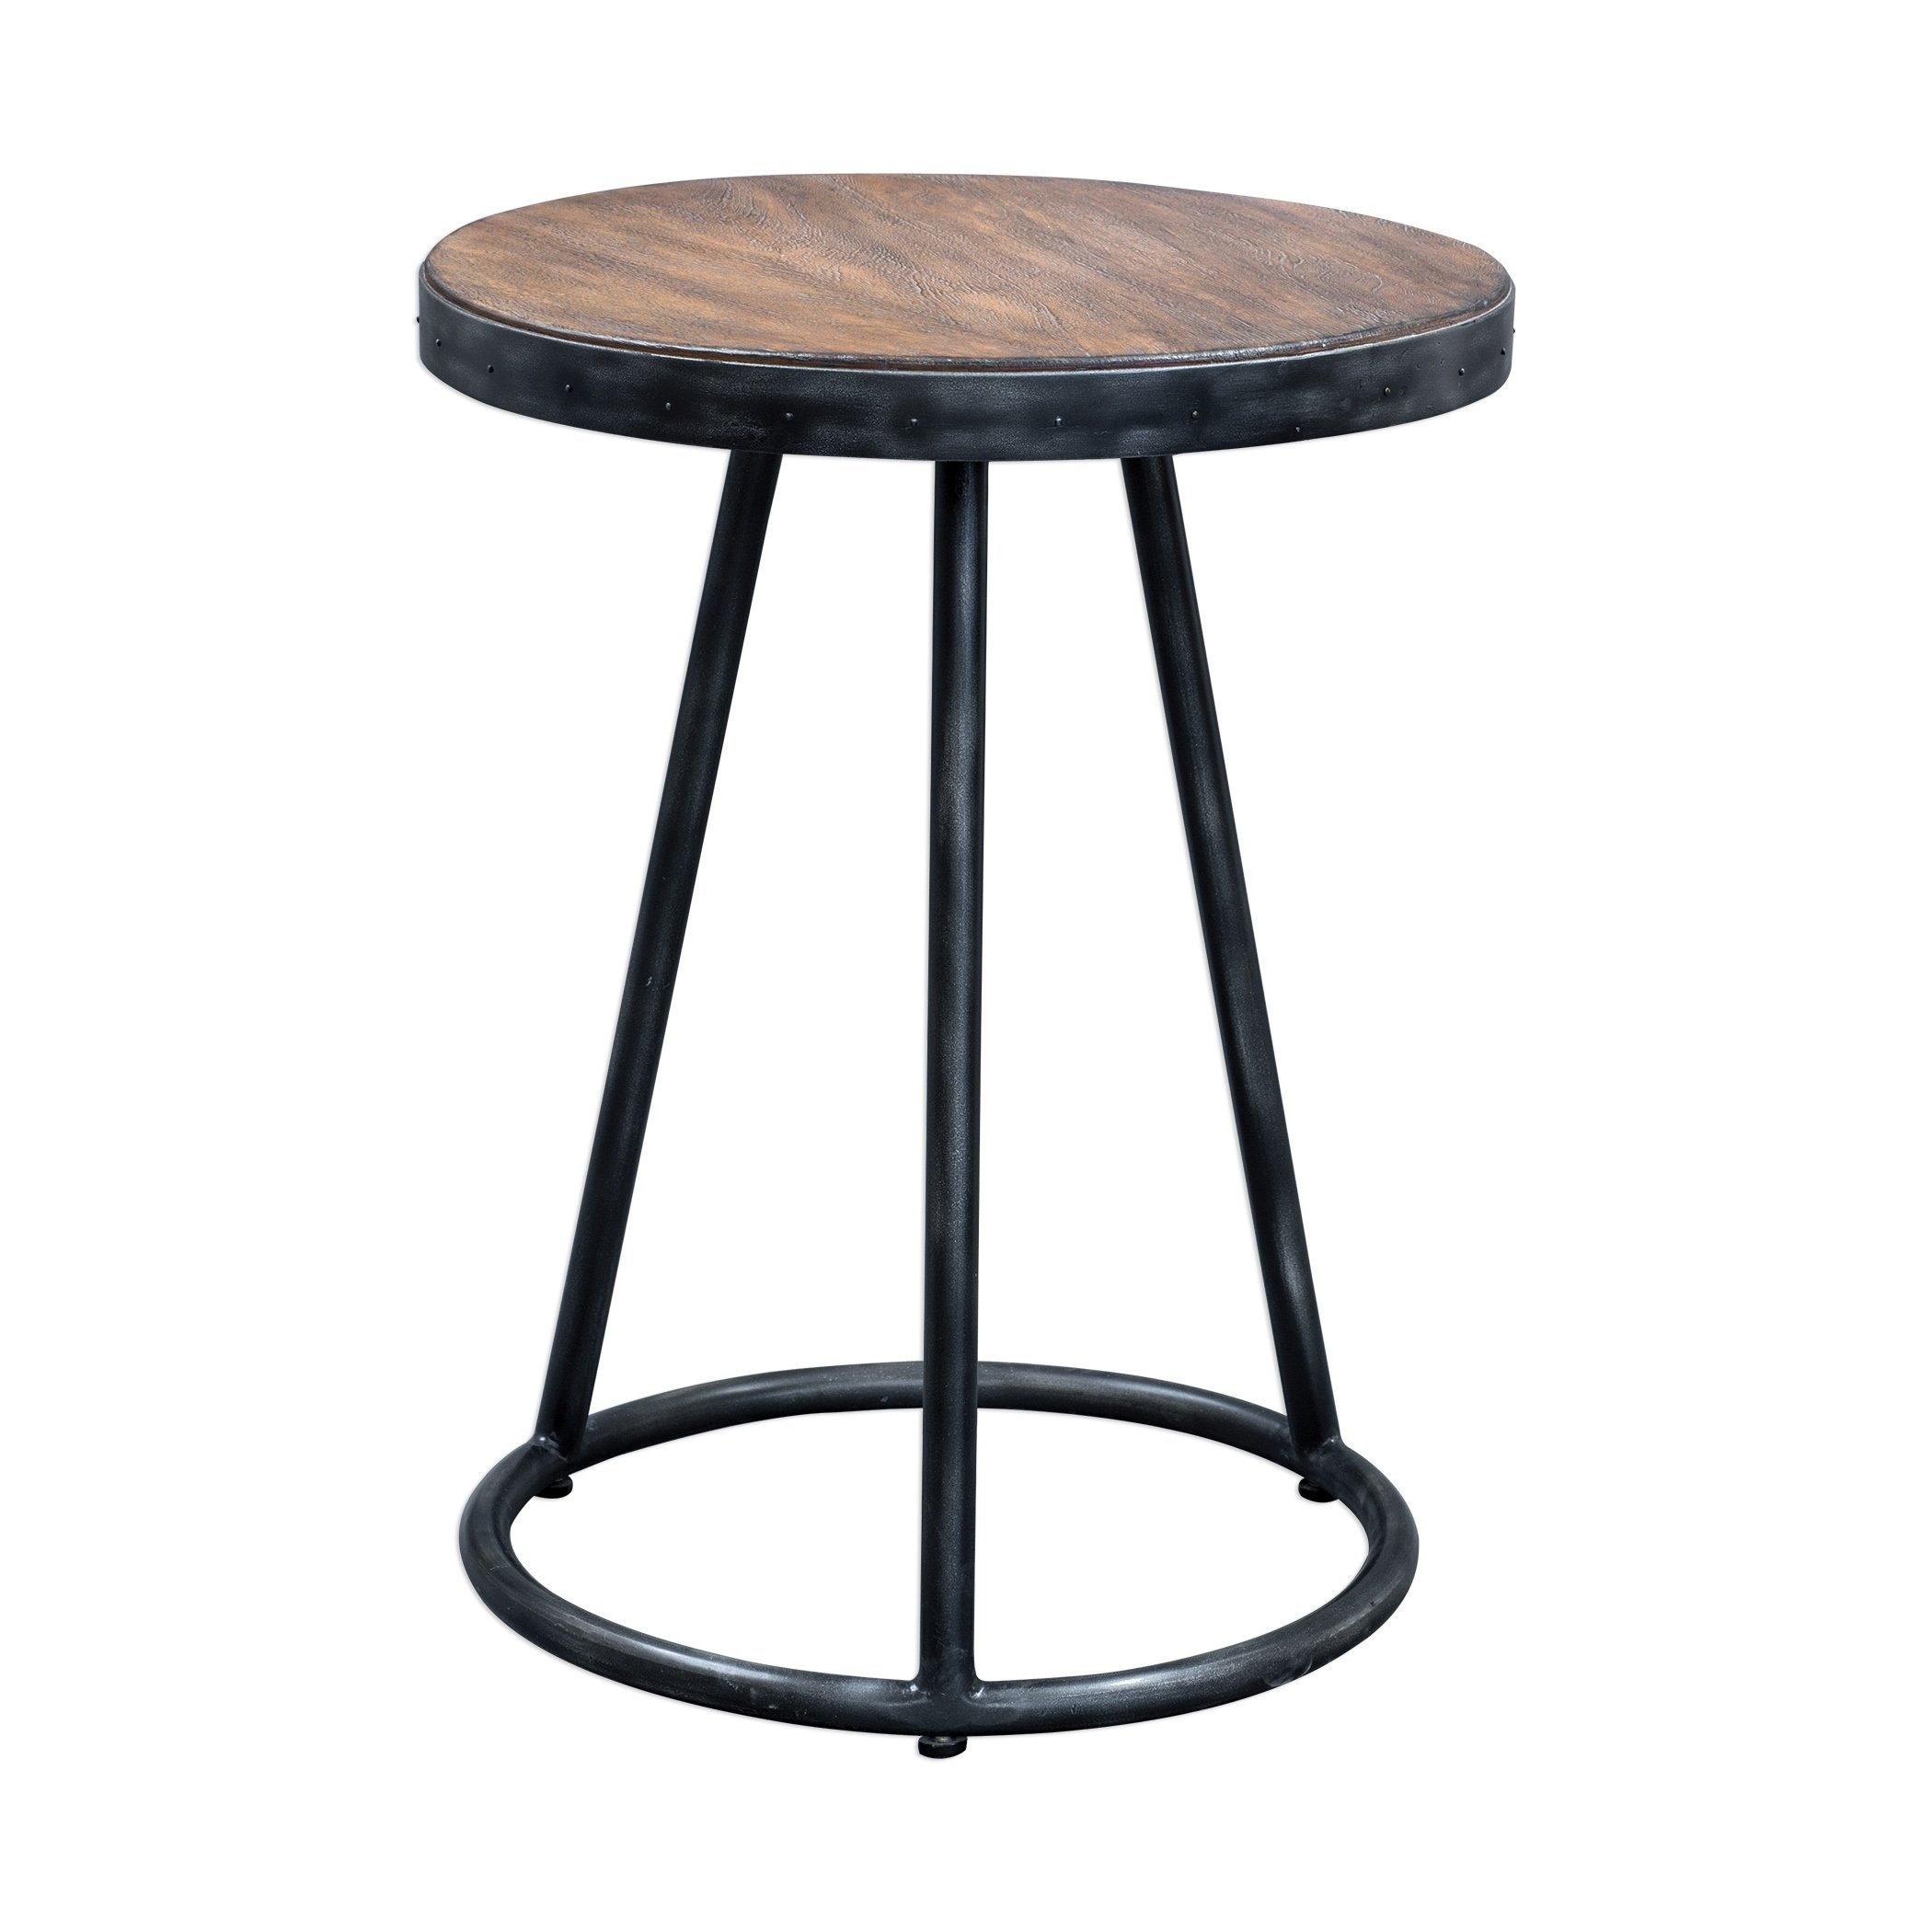 uttermost hector light grey and aged steel round accent table free shipping today small retro side slate top patio over the couch ikea nest tables nautical bar lights triangle